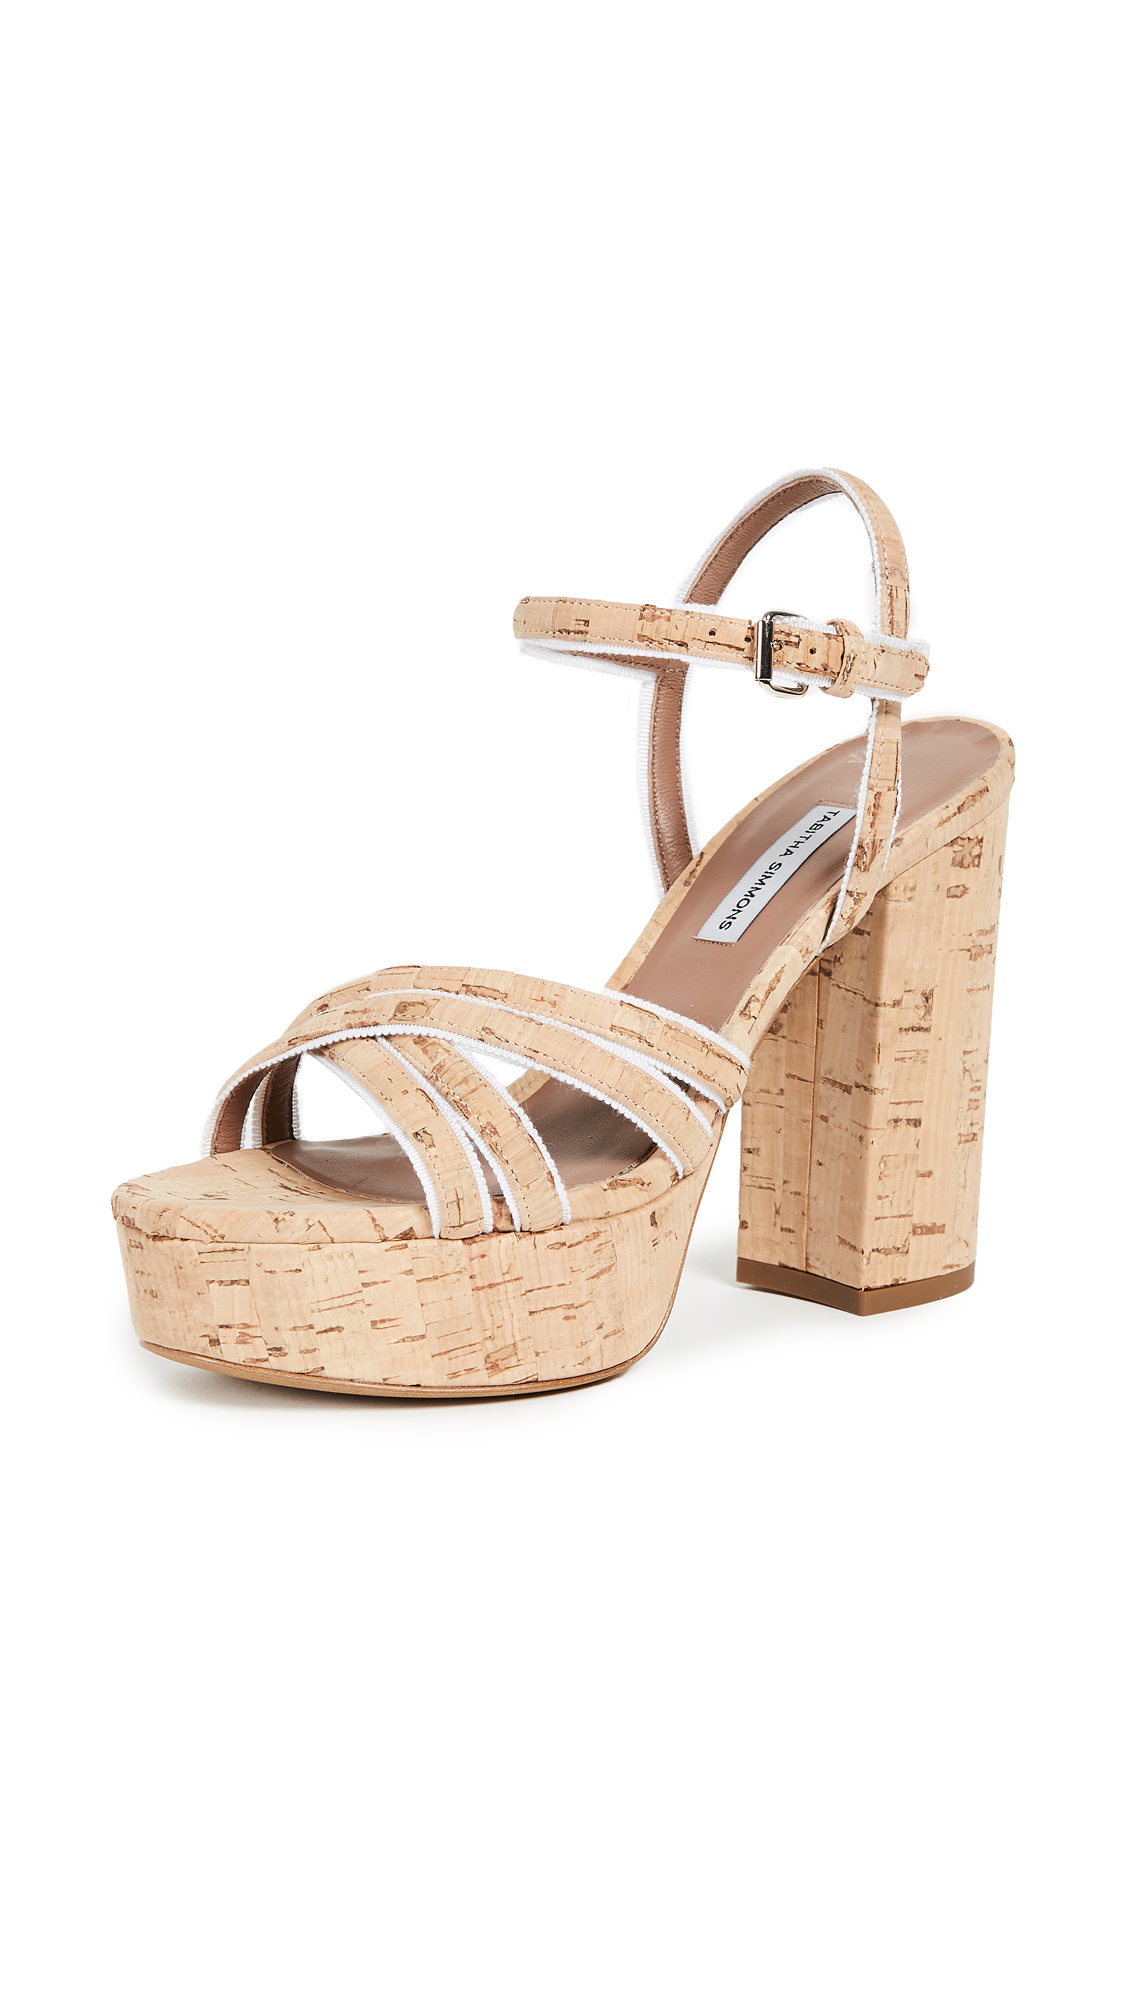 Tabitha Simmons Hensley Platform Sandal Pumps - Natural/White